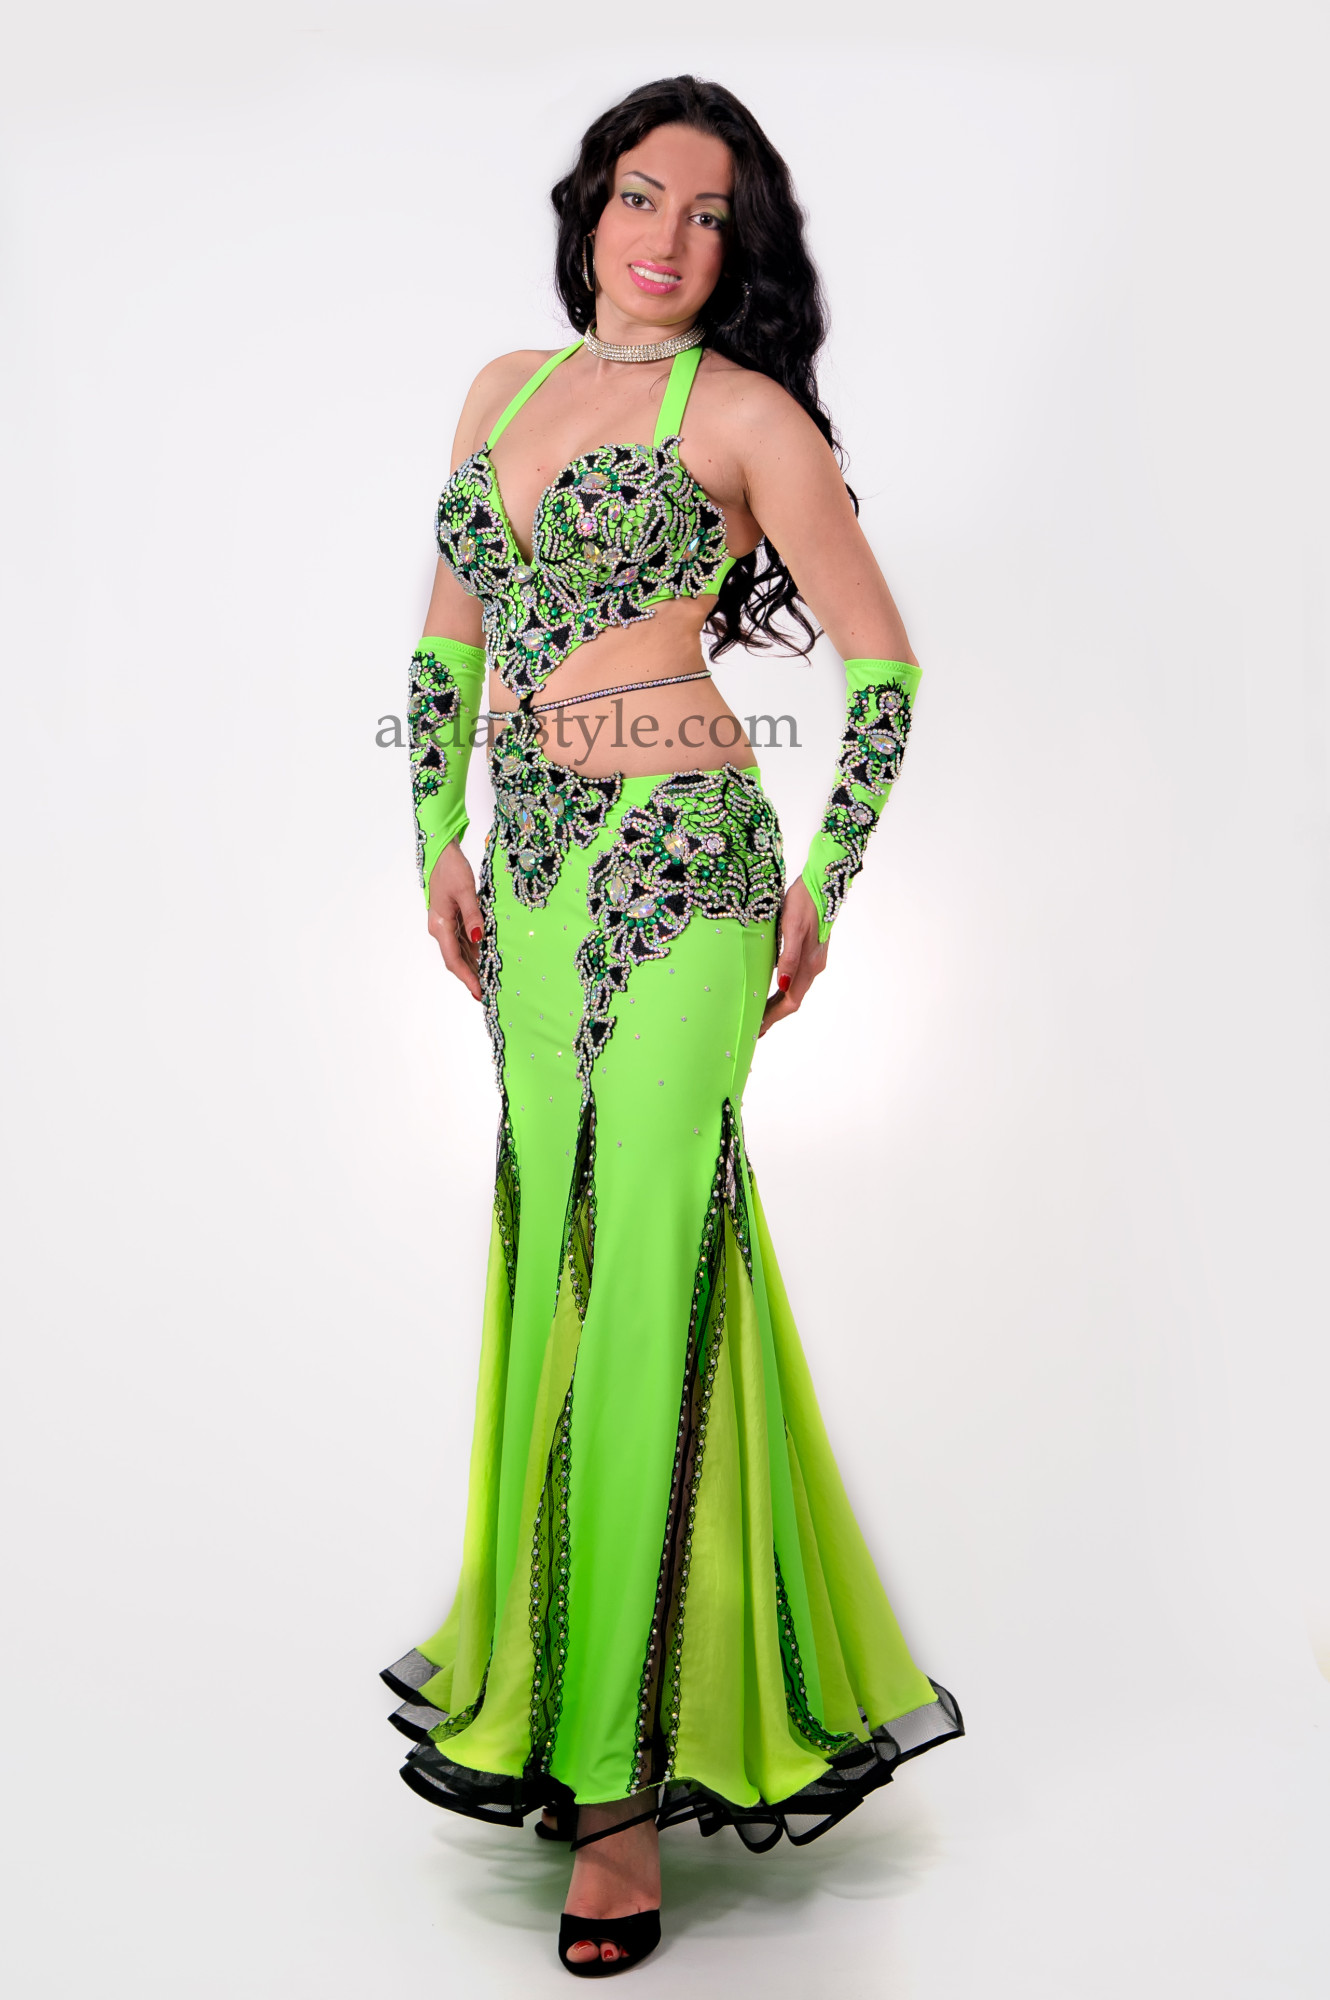 Green professional belly dance dress. Comes with a elbow length richly decorated glowes